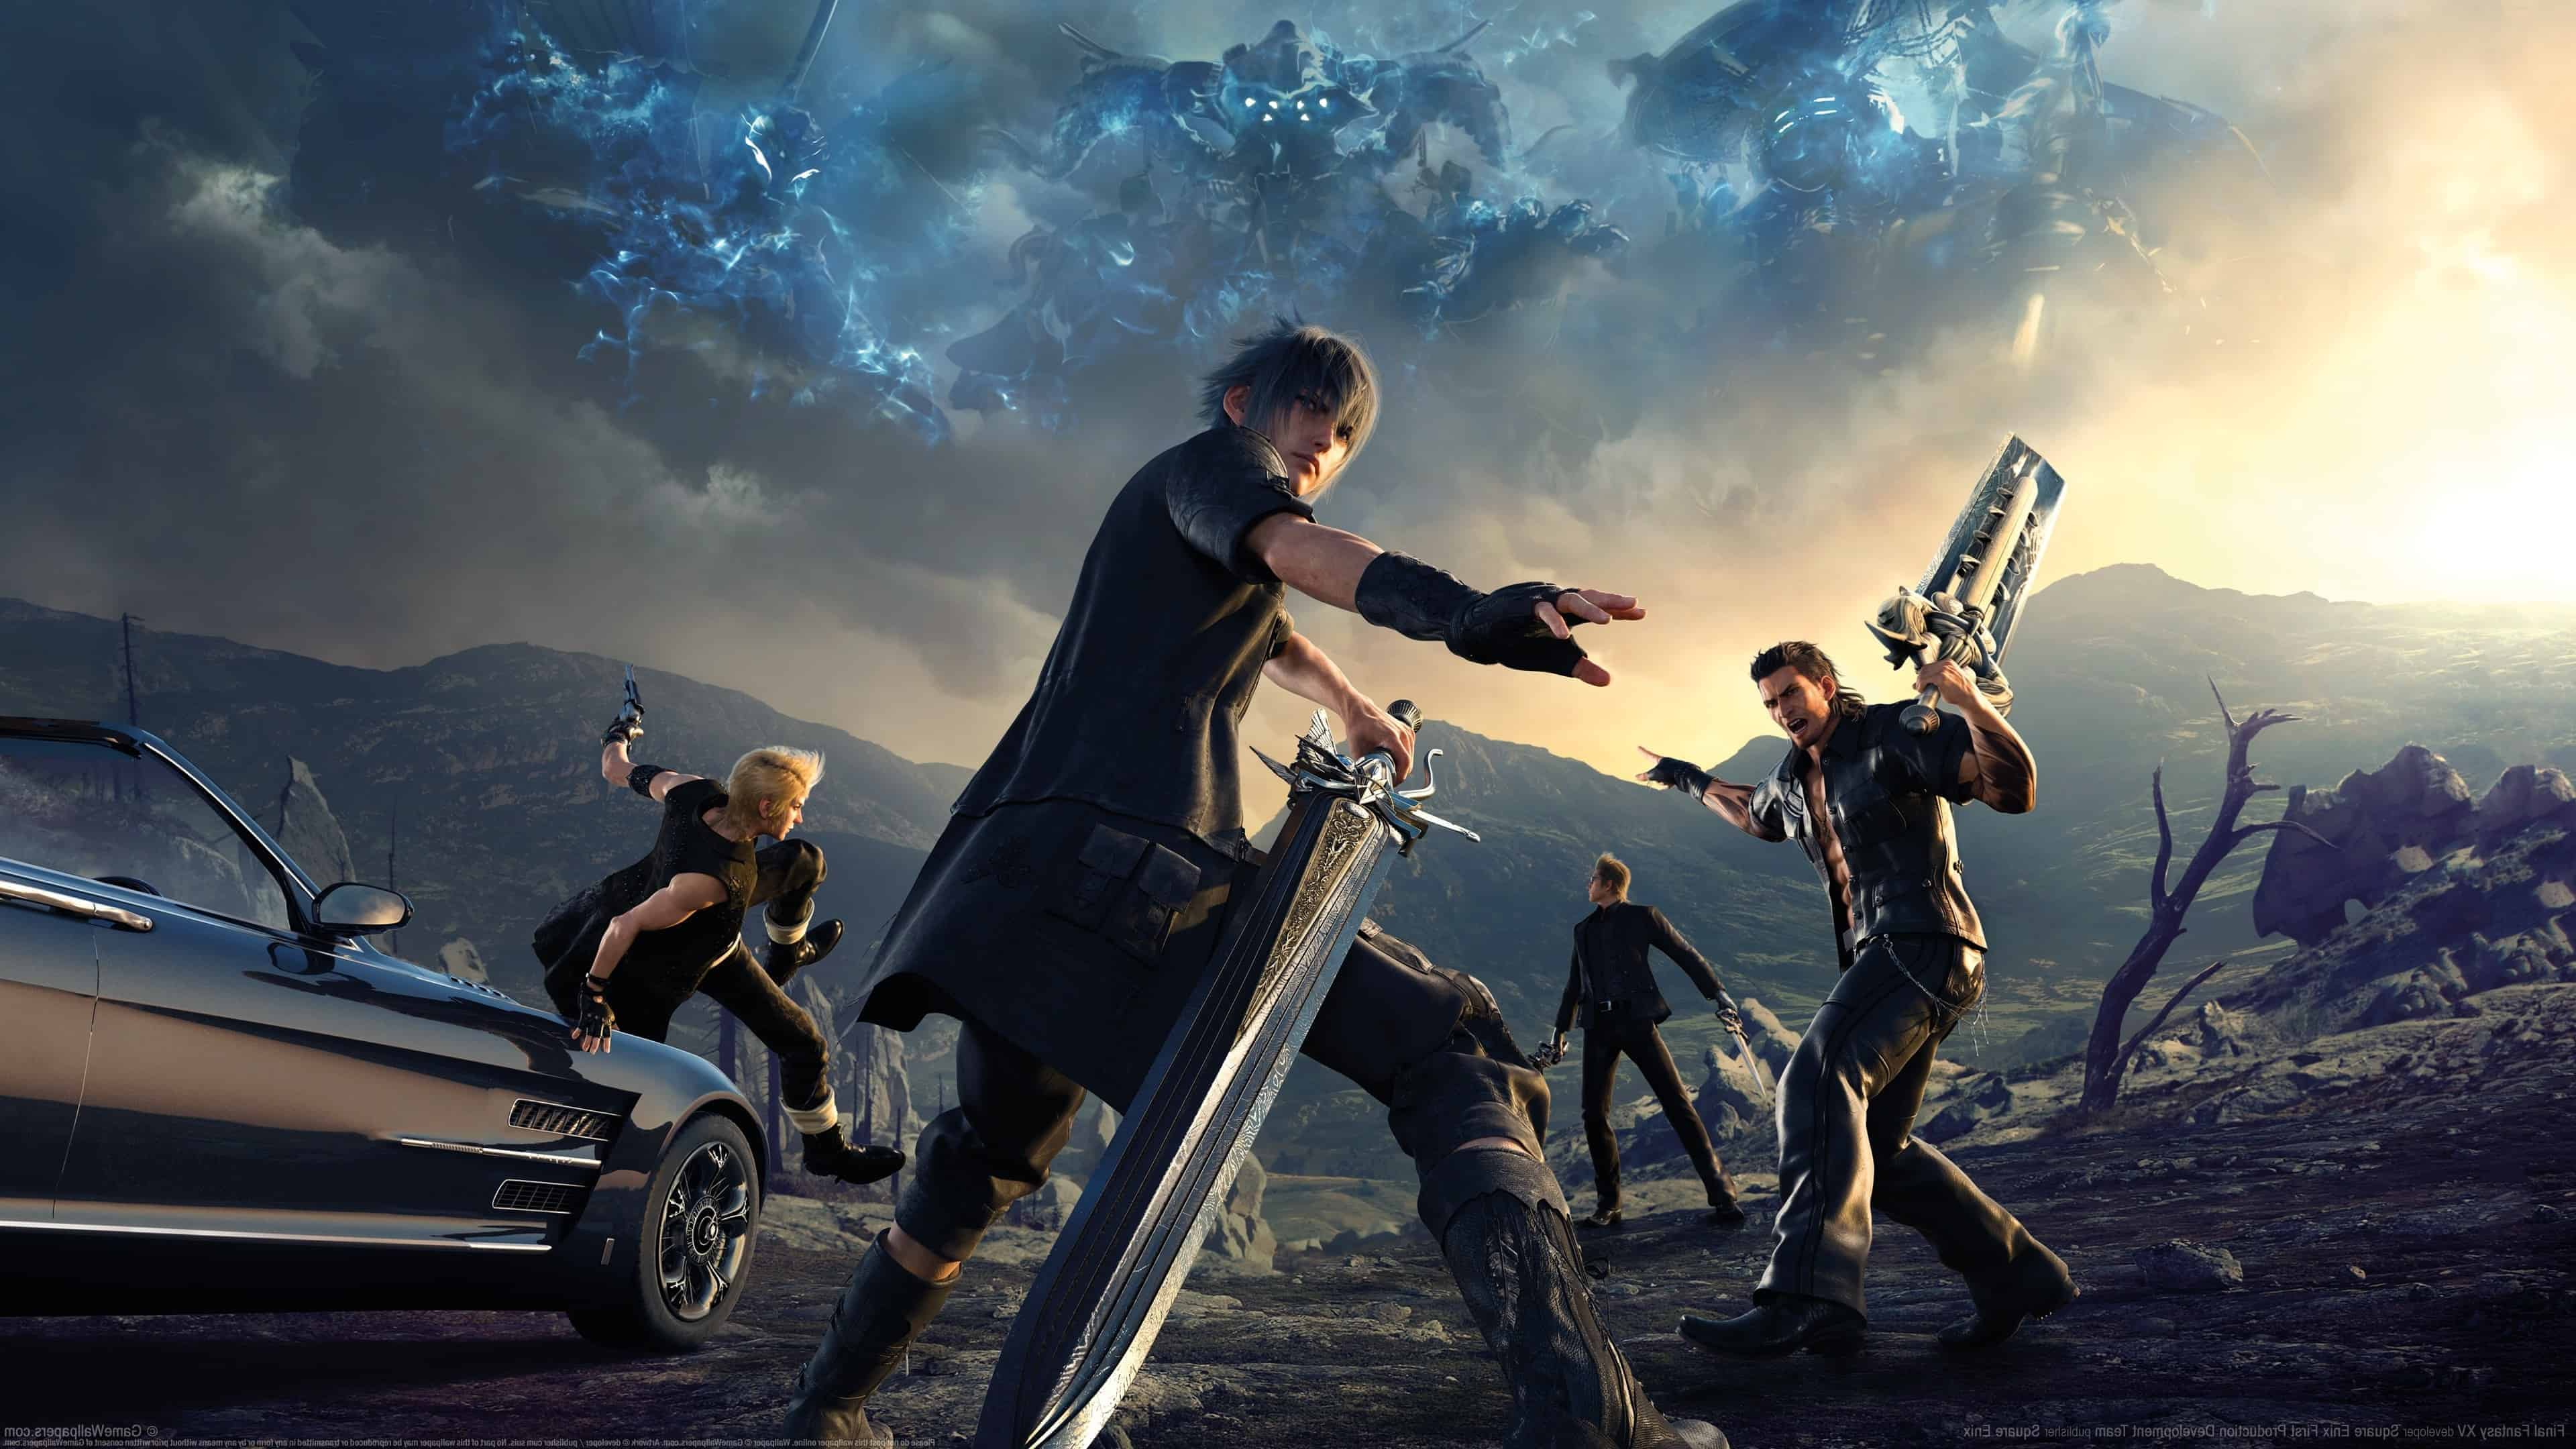 4k Final Fantasy Xv Hd Games 4k Wallpapers Images: Final Fantasy XV UHD 4K Wallpaper